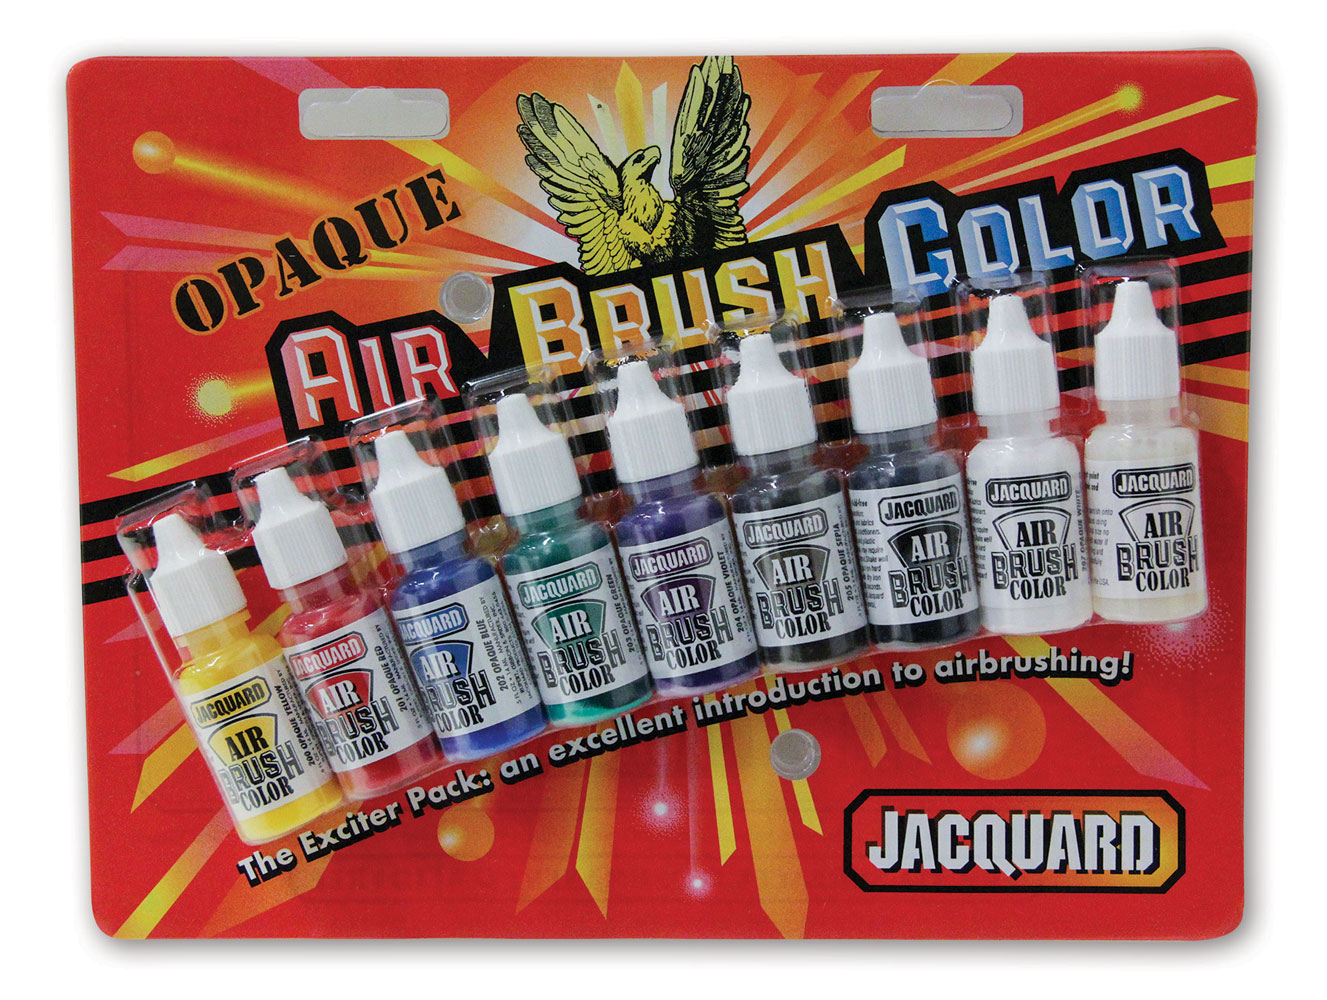 Jacquard Opaque Airbrush Exciter Pack